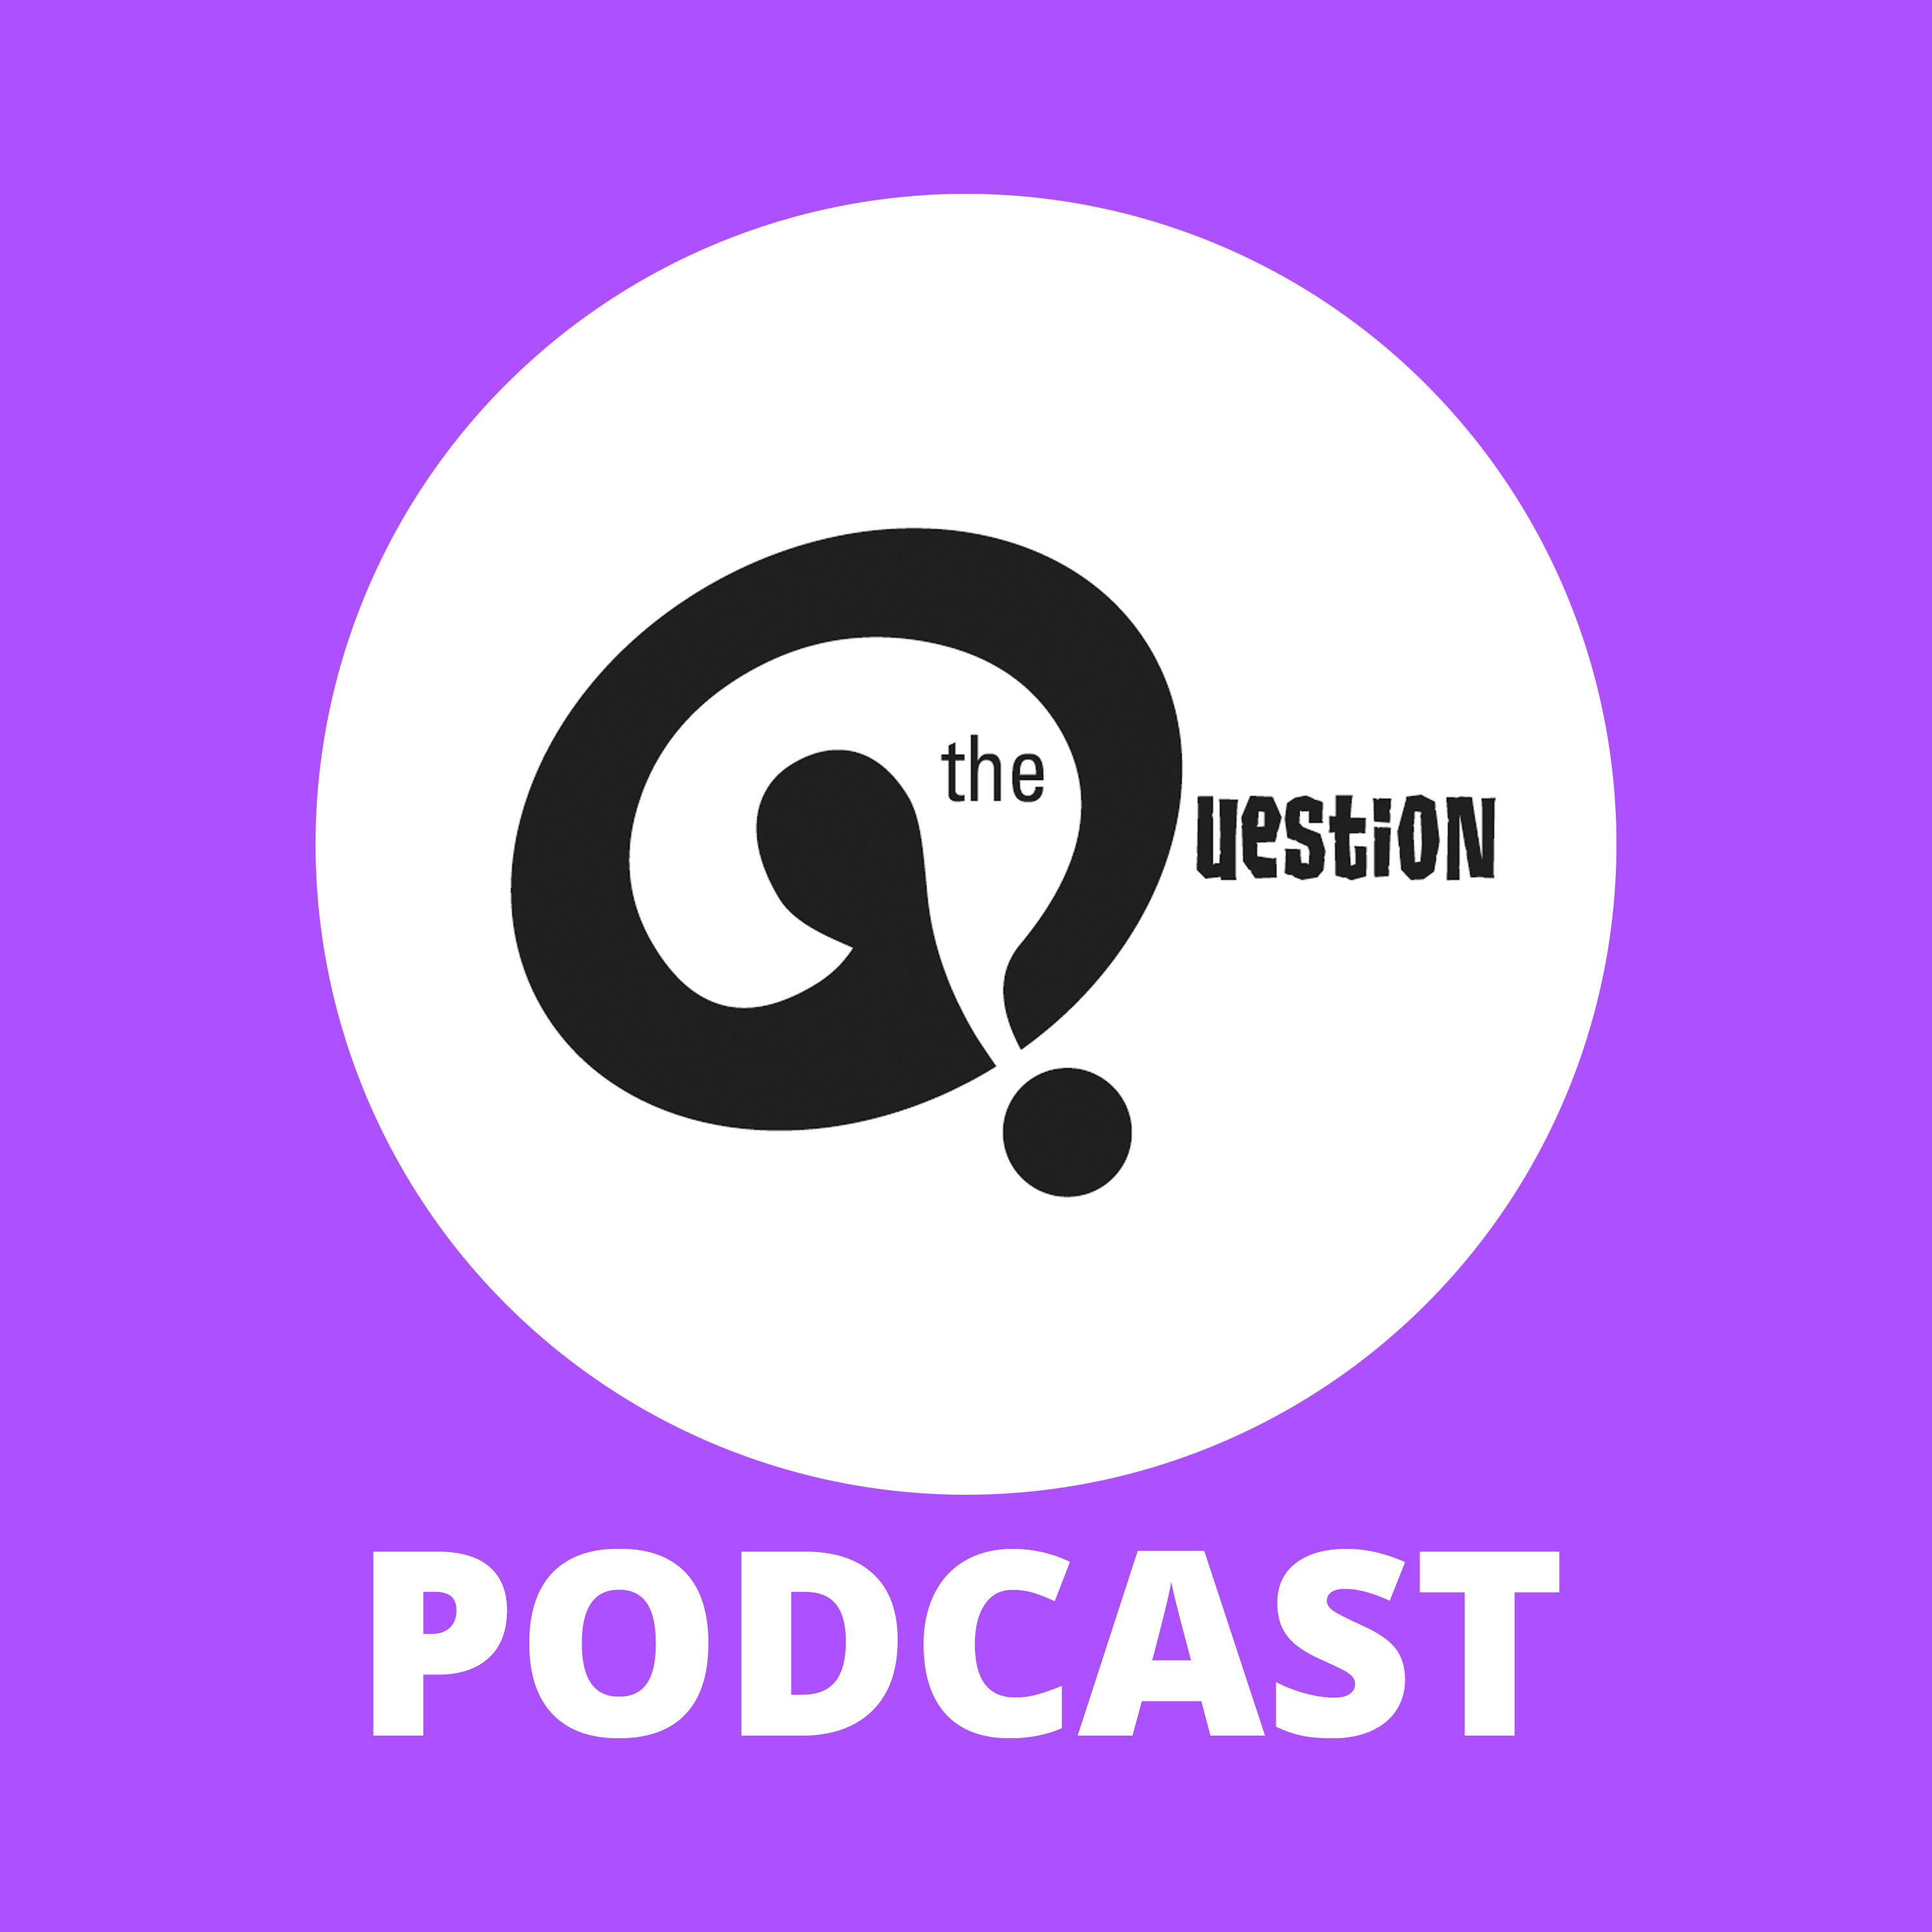 The Question Community Podcast | A Community Exploring Truth In Calgary, Alberta, Canada | TheQuestion.ca